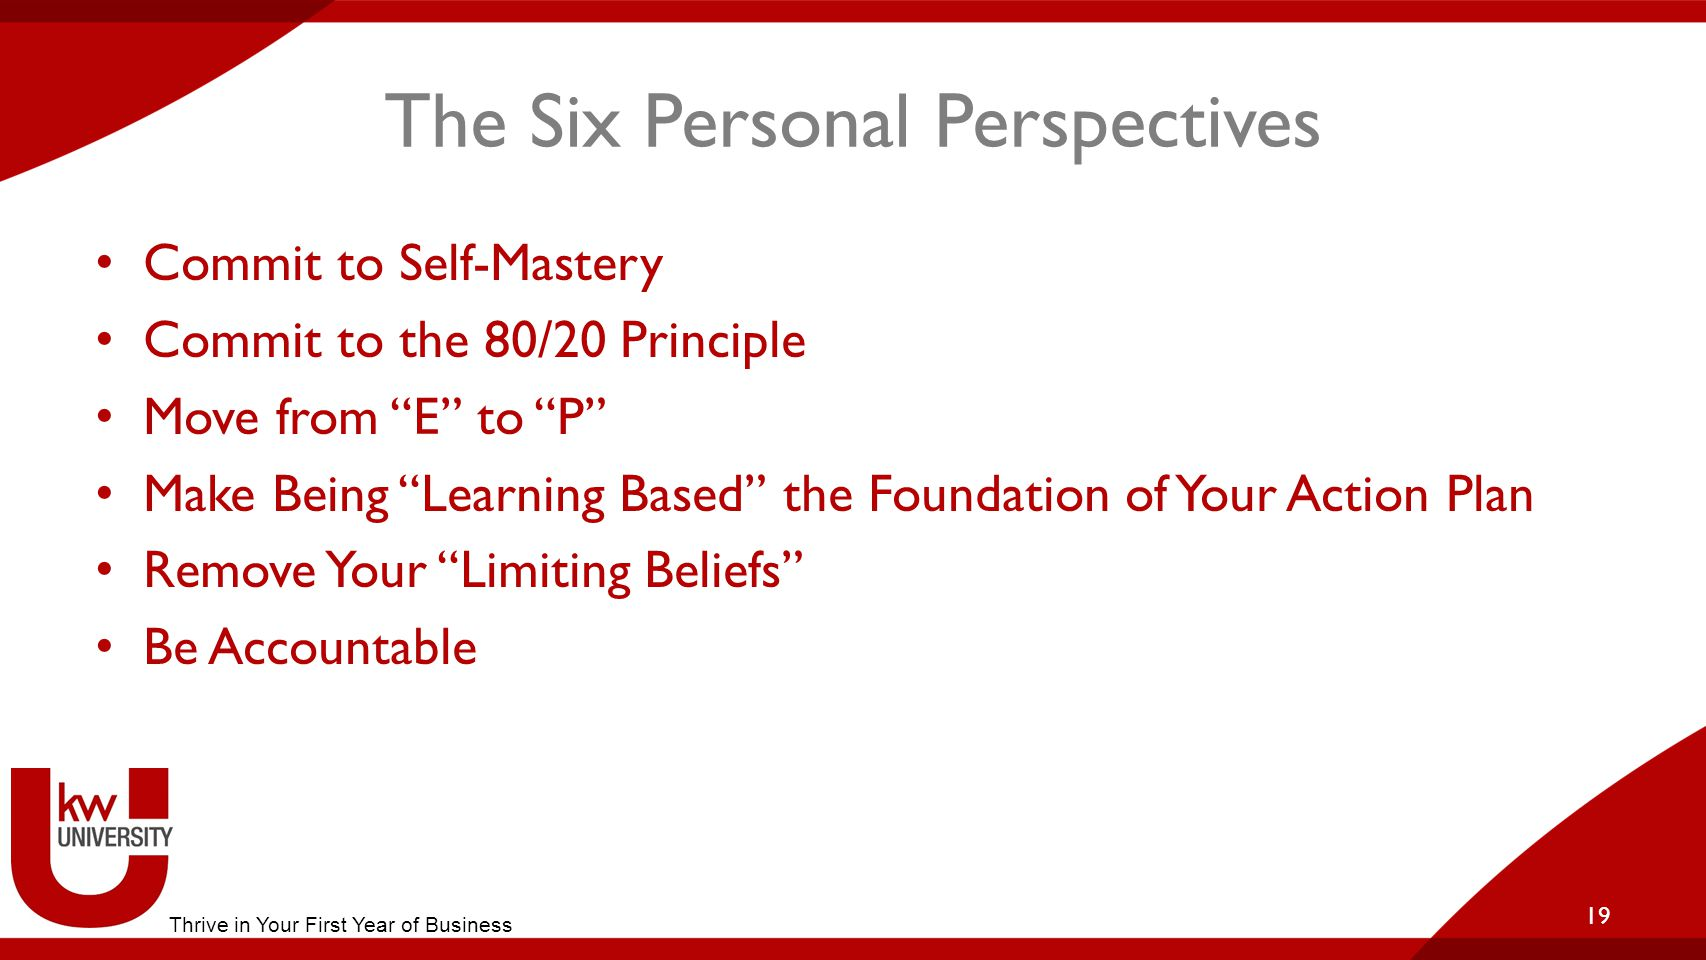 The Six Personal Perspectives Commit to Self-Mastery Commit to the 80/20 Principle Move from E to P Make Being Learning Based the Foundation of Your Action Plan Remove Your Limiting Beliefs Be Accountable 19 Thrive in Your First Year of Business